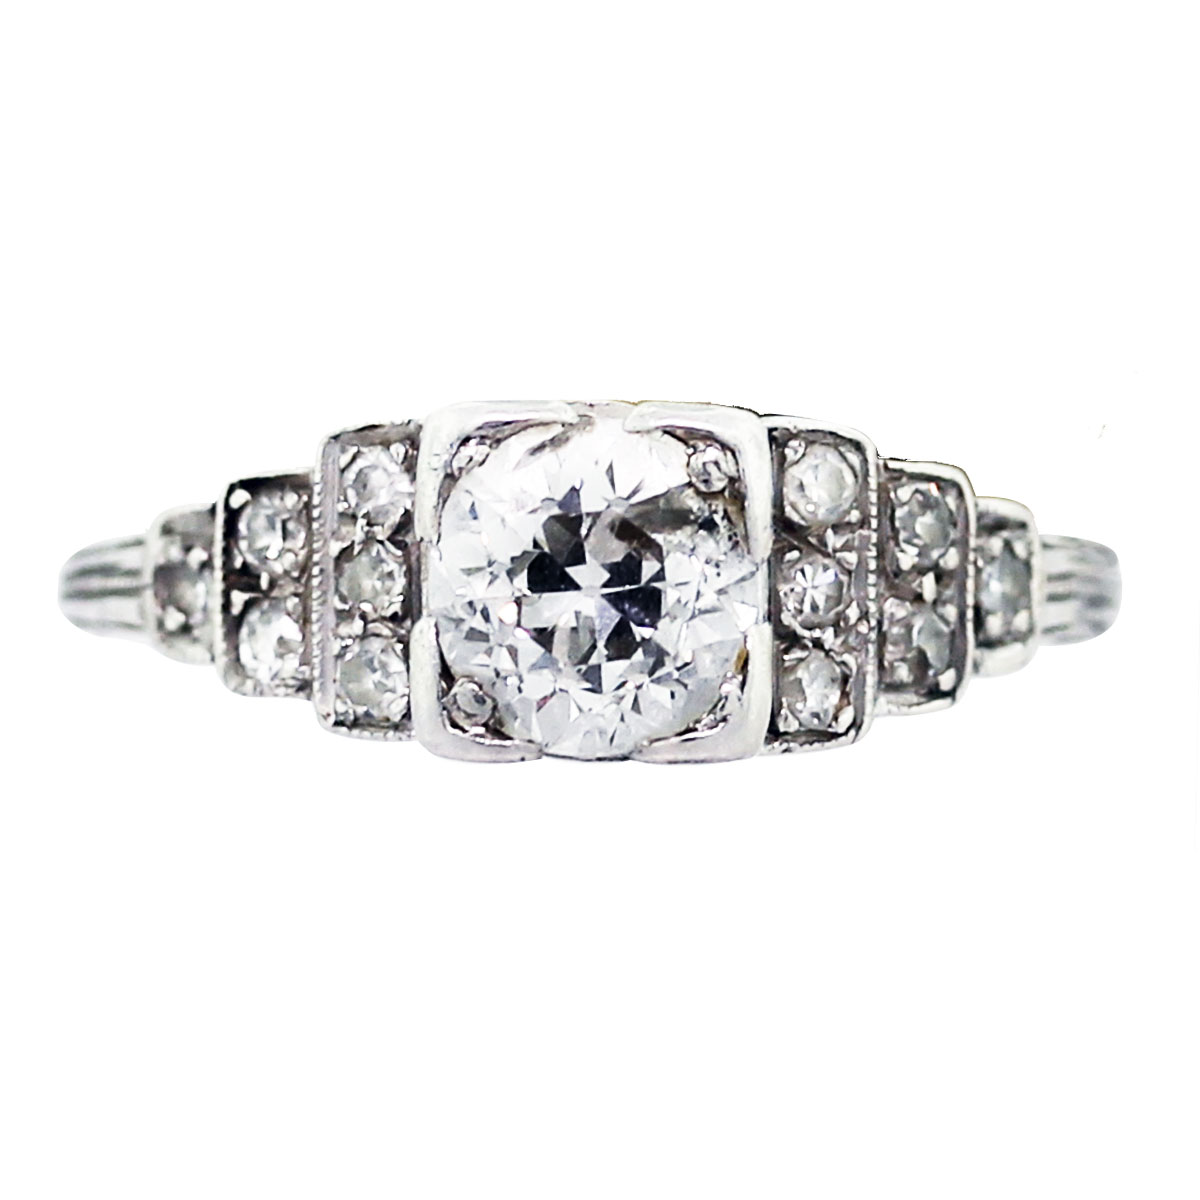 Platinum and Diamond Vintage Engagement Ring